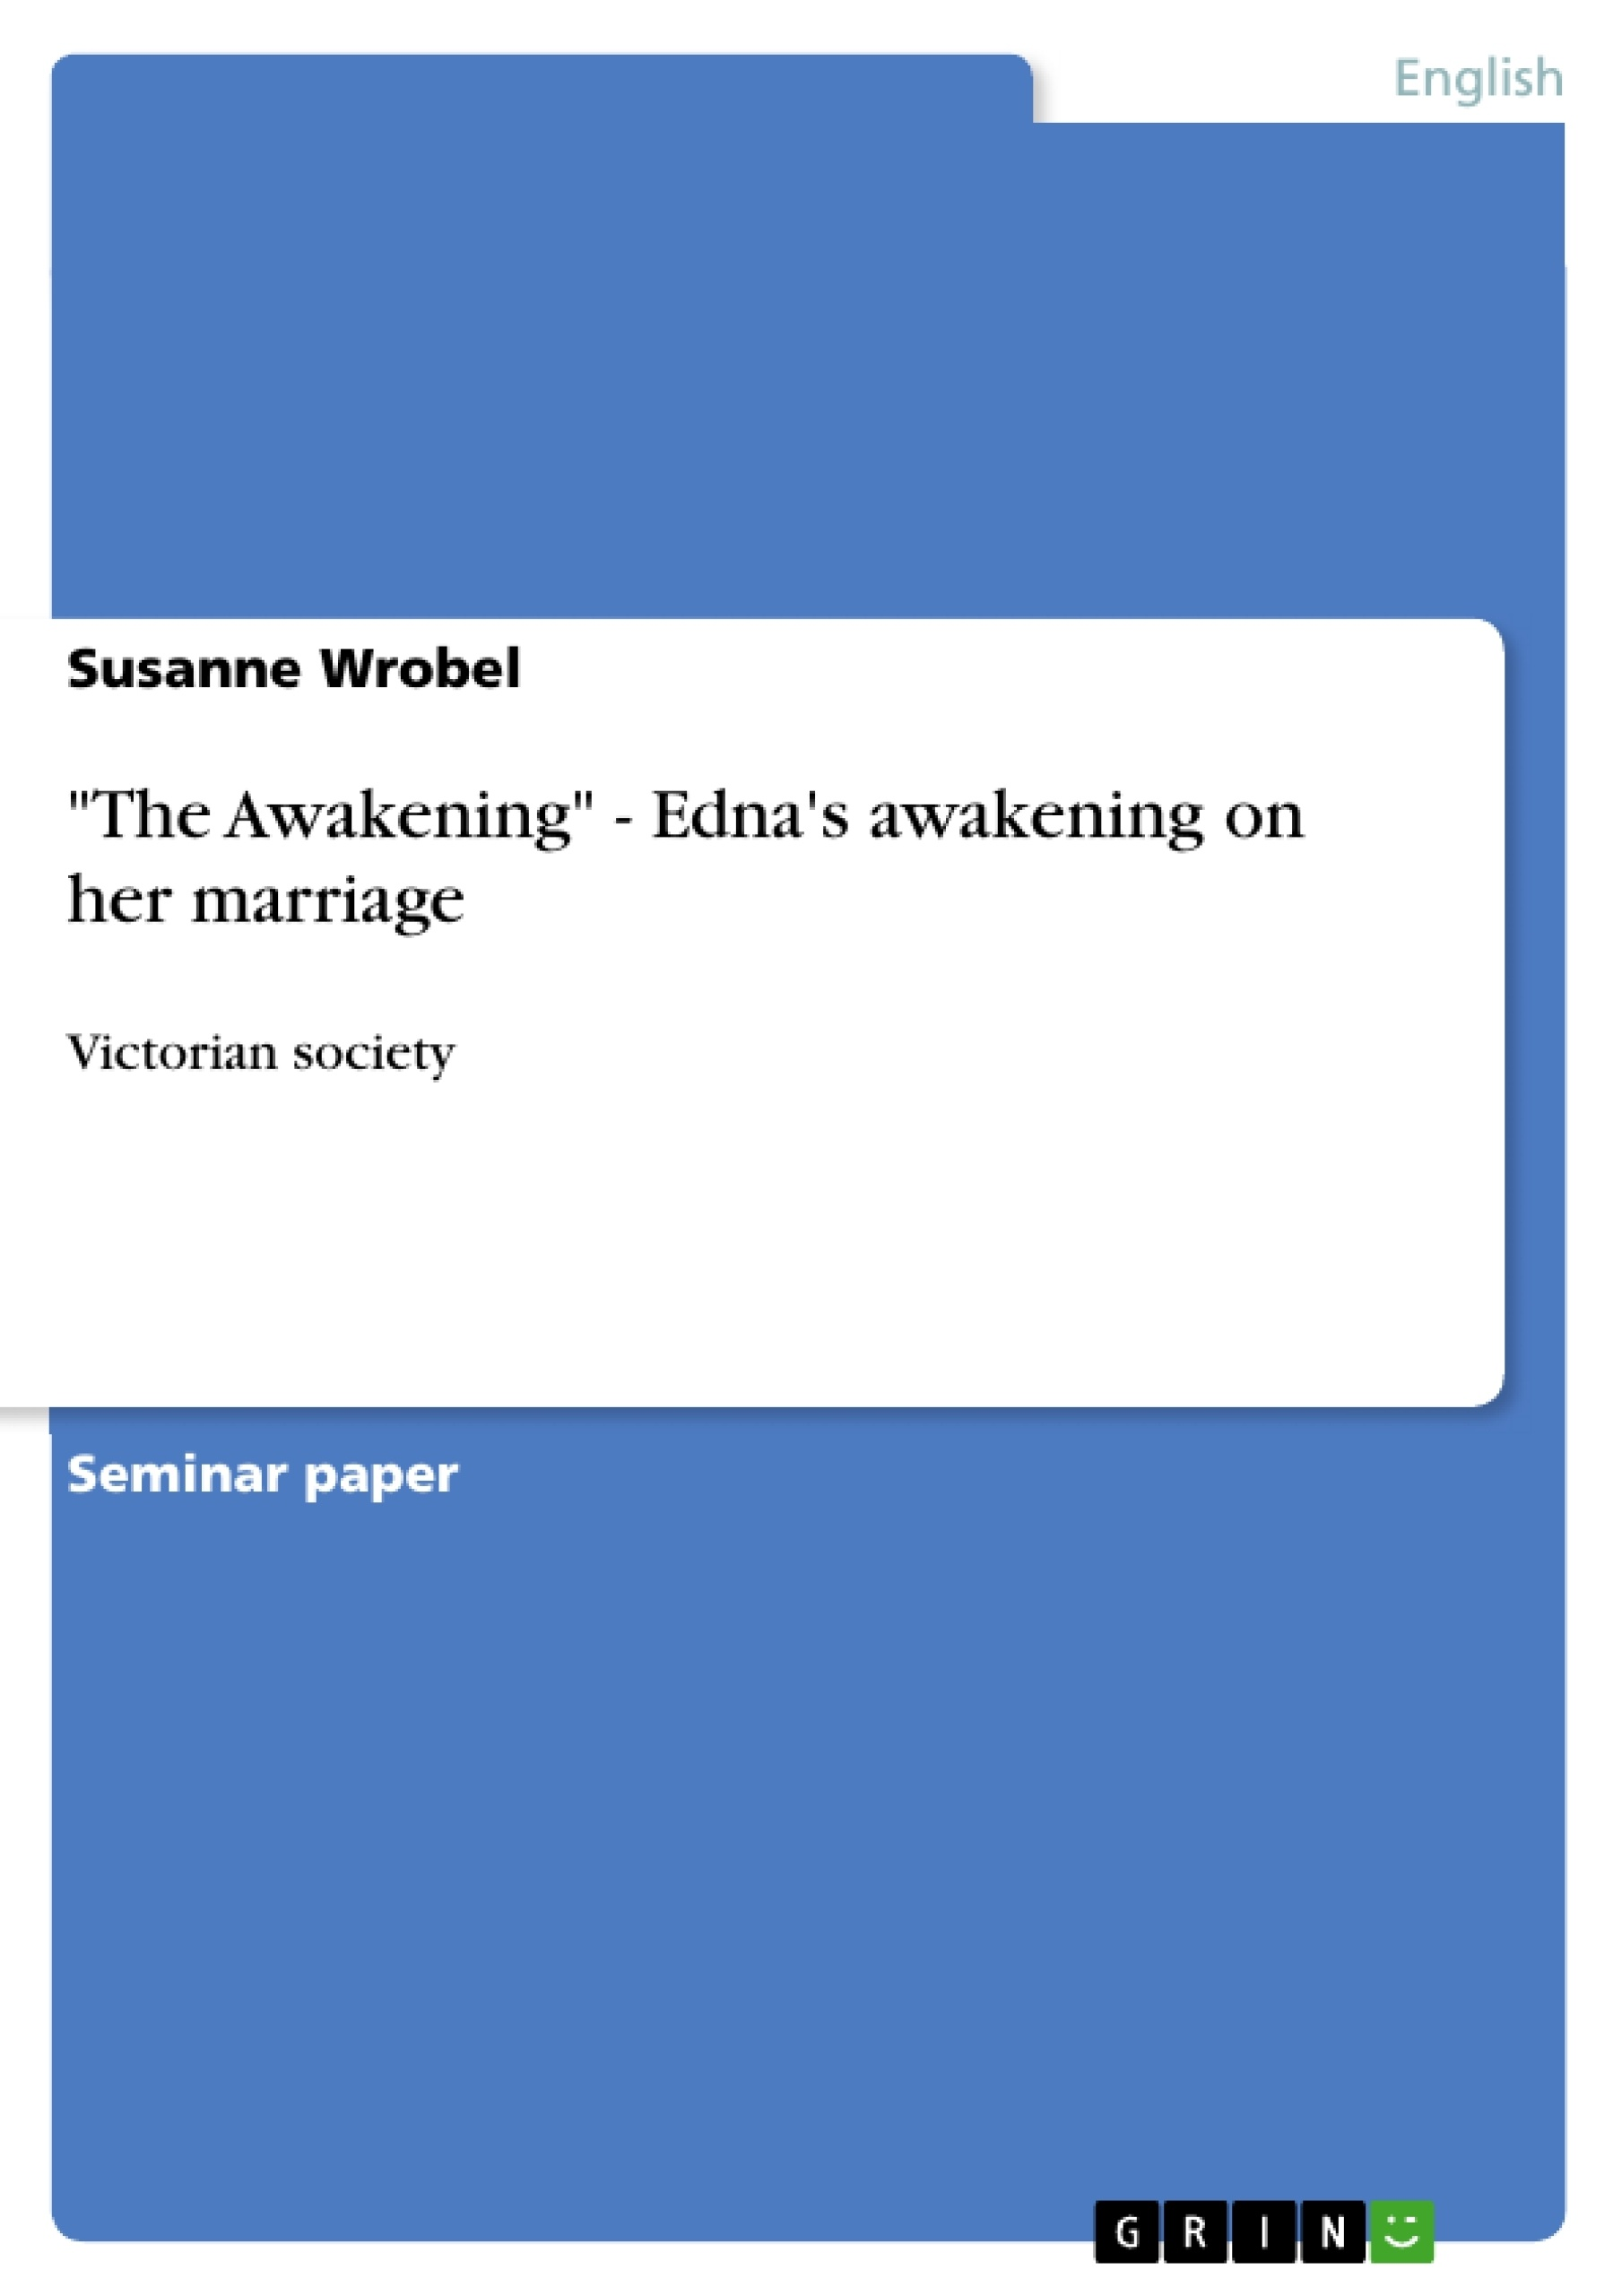 the awakening edna s awakening on her marriage publish your upload your own papers earn money and win an iphone 7